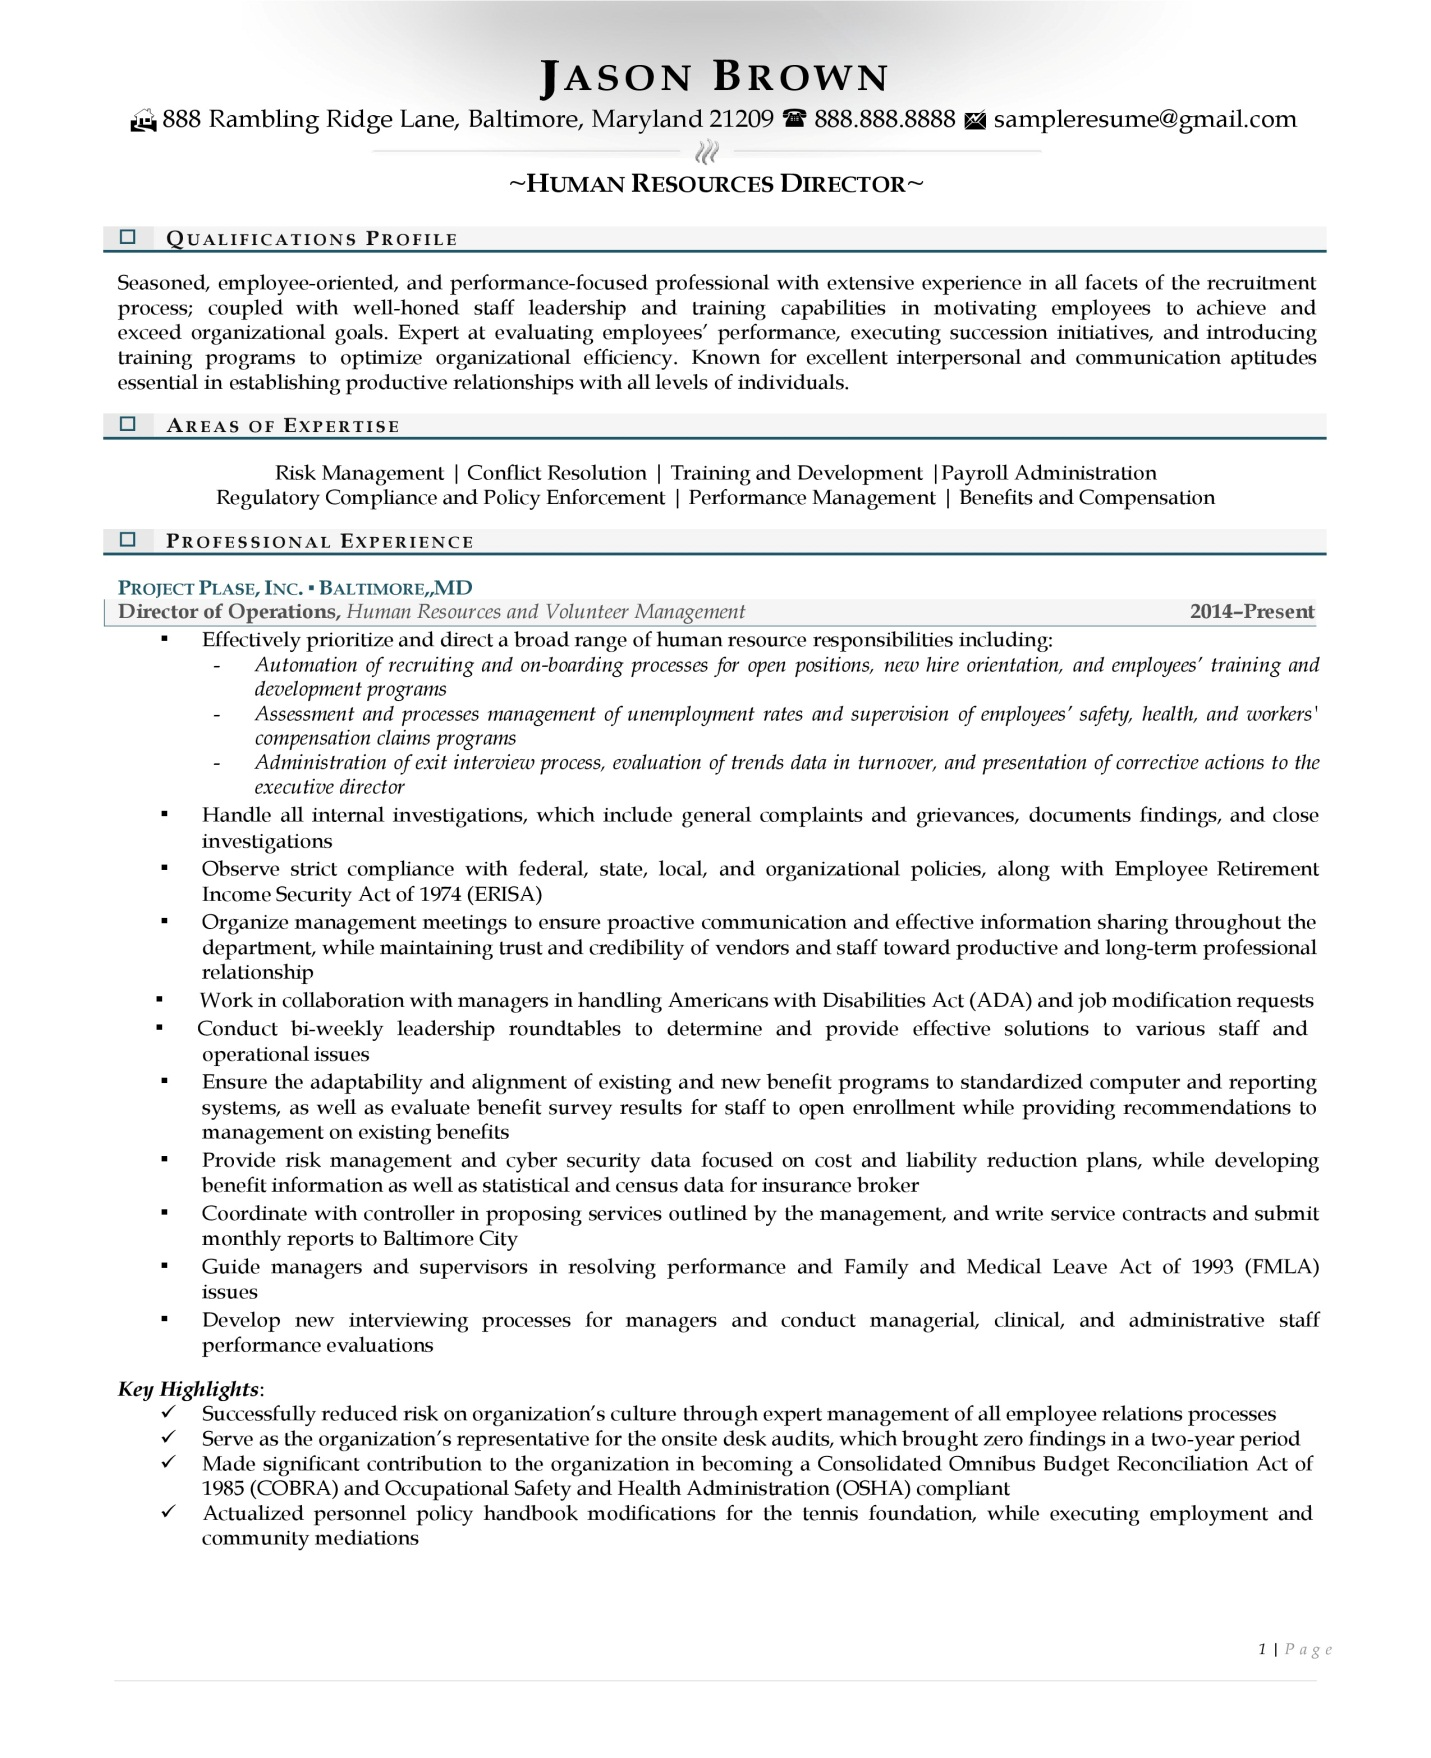 Human resource director resume examples with light colored accents page 1